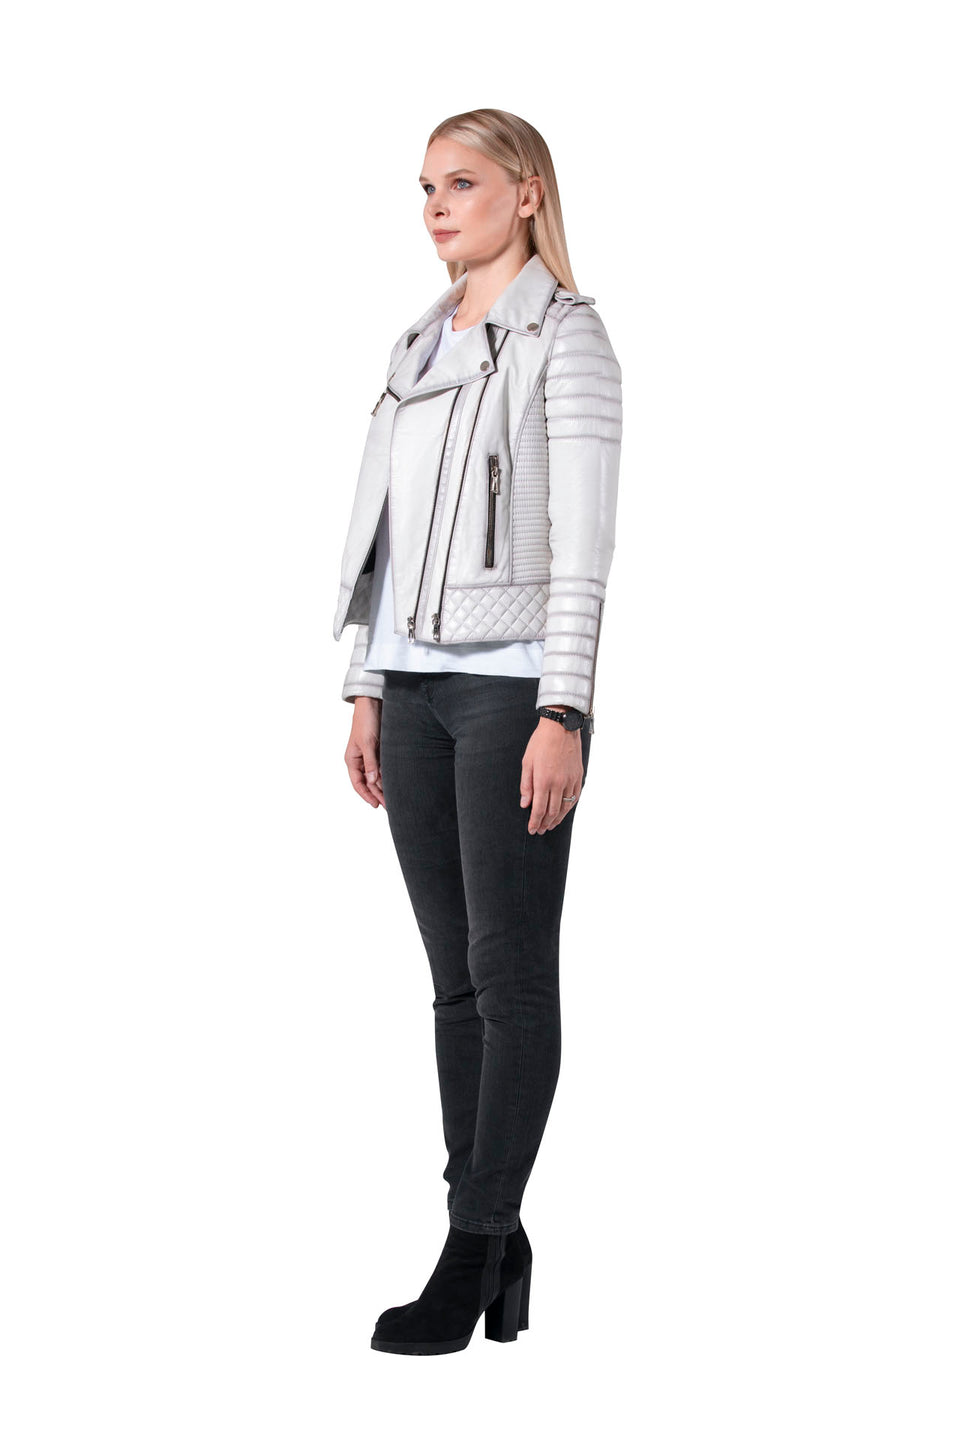 Grace - Women's Genuine Leather Zipper Jacket 2020